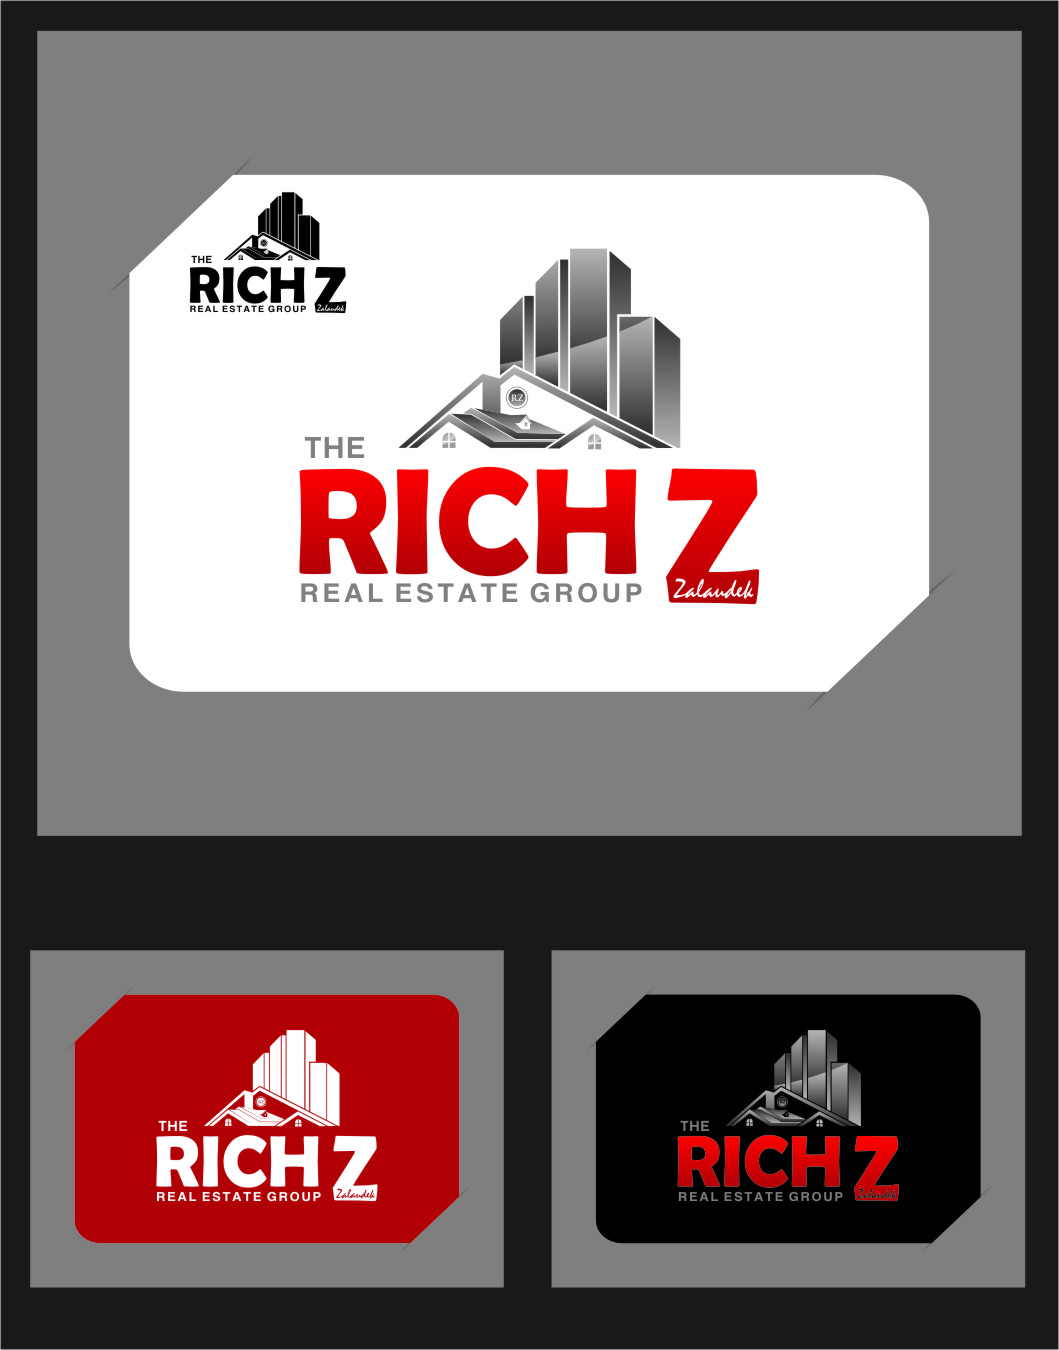 Logo Design by Ngepet_art - Entry No. 231 in the Logo Design Contest The Rich Z. Real Estate Group Logo Design.